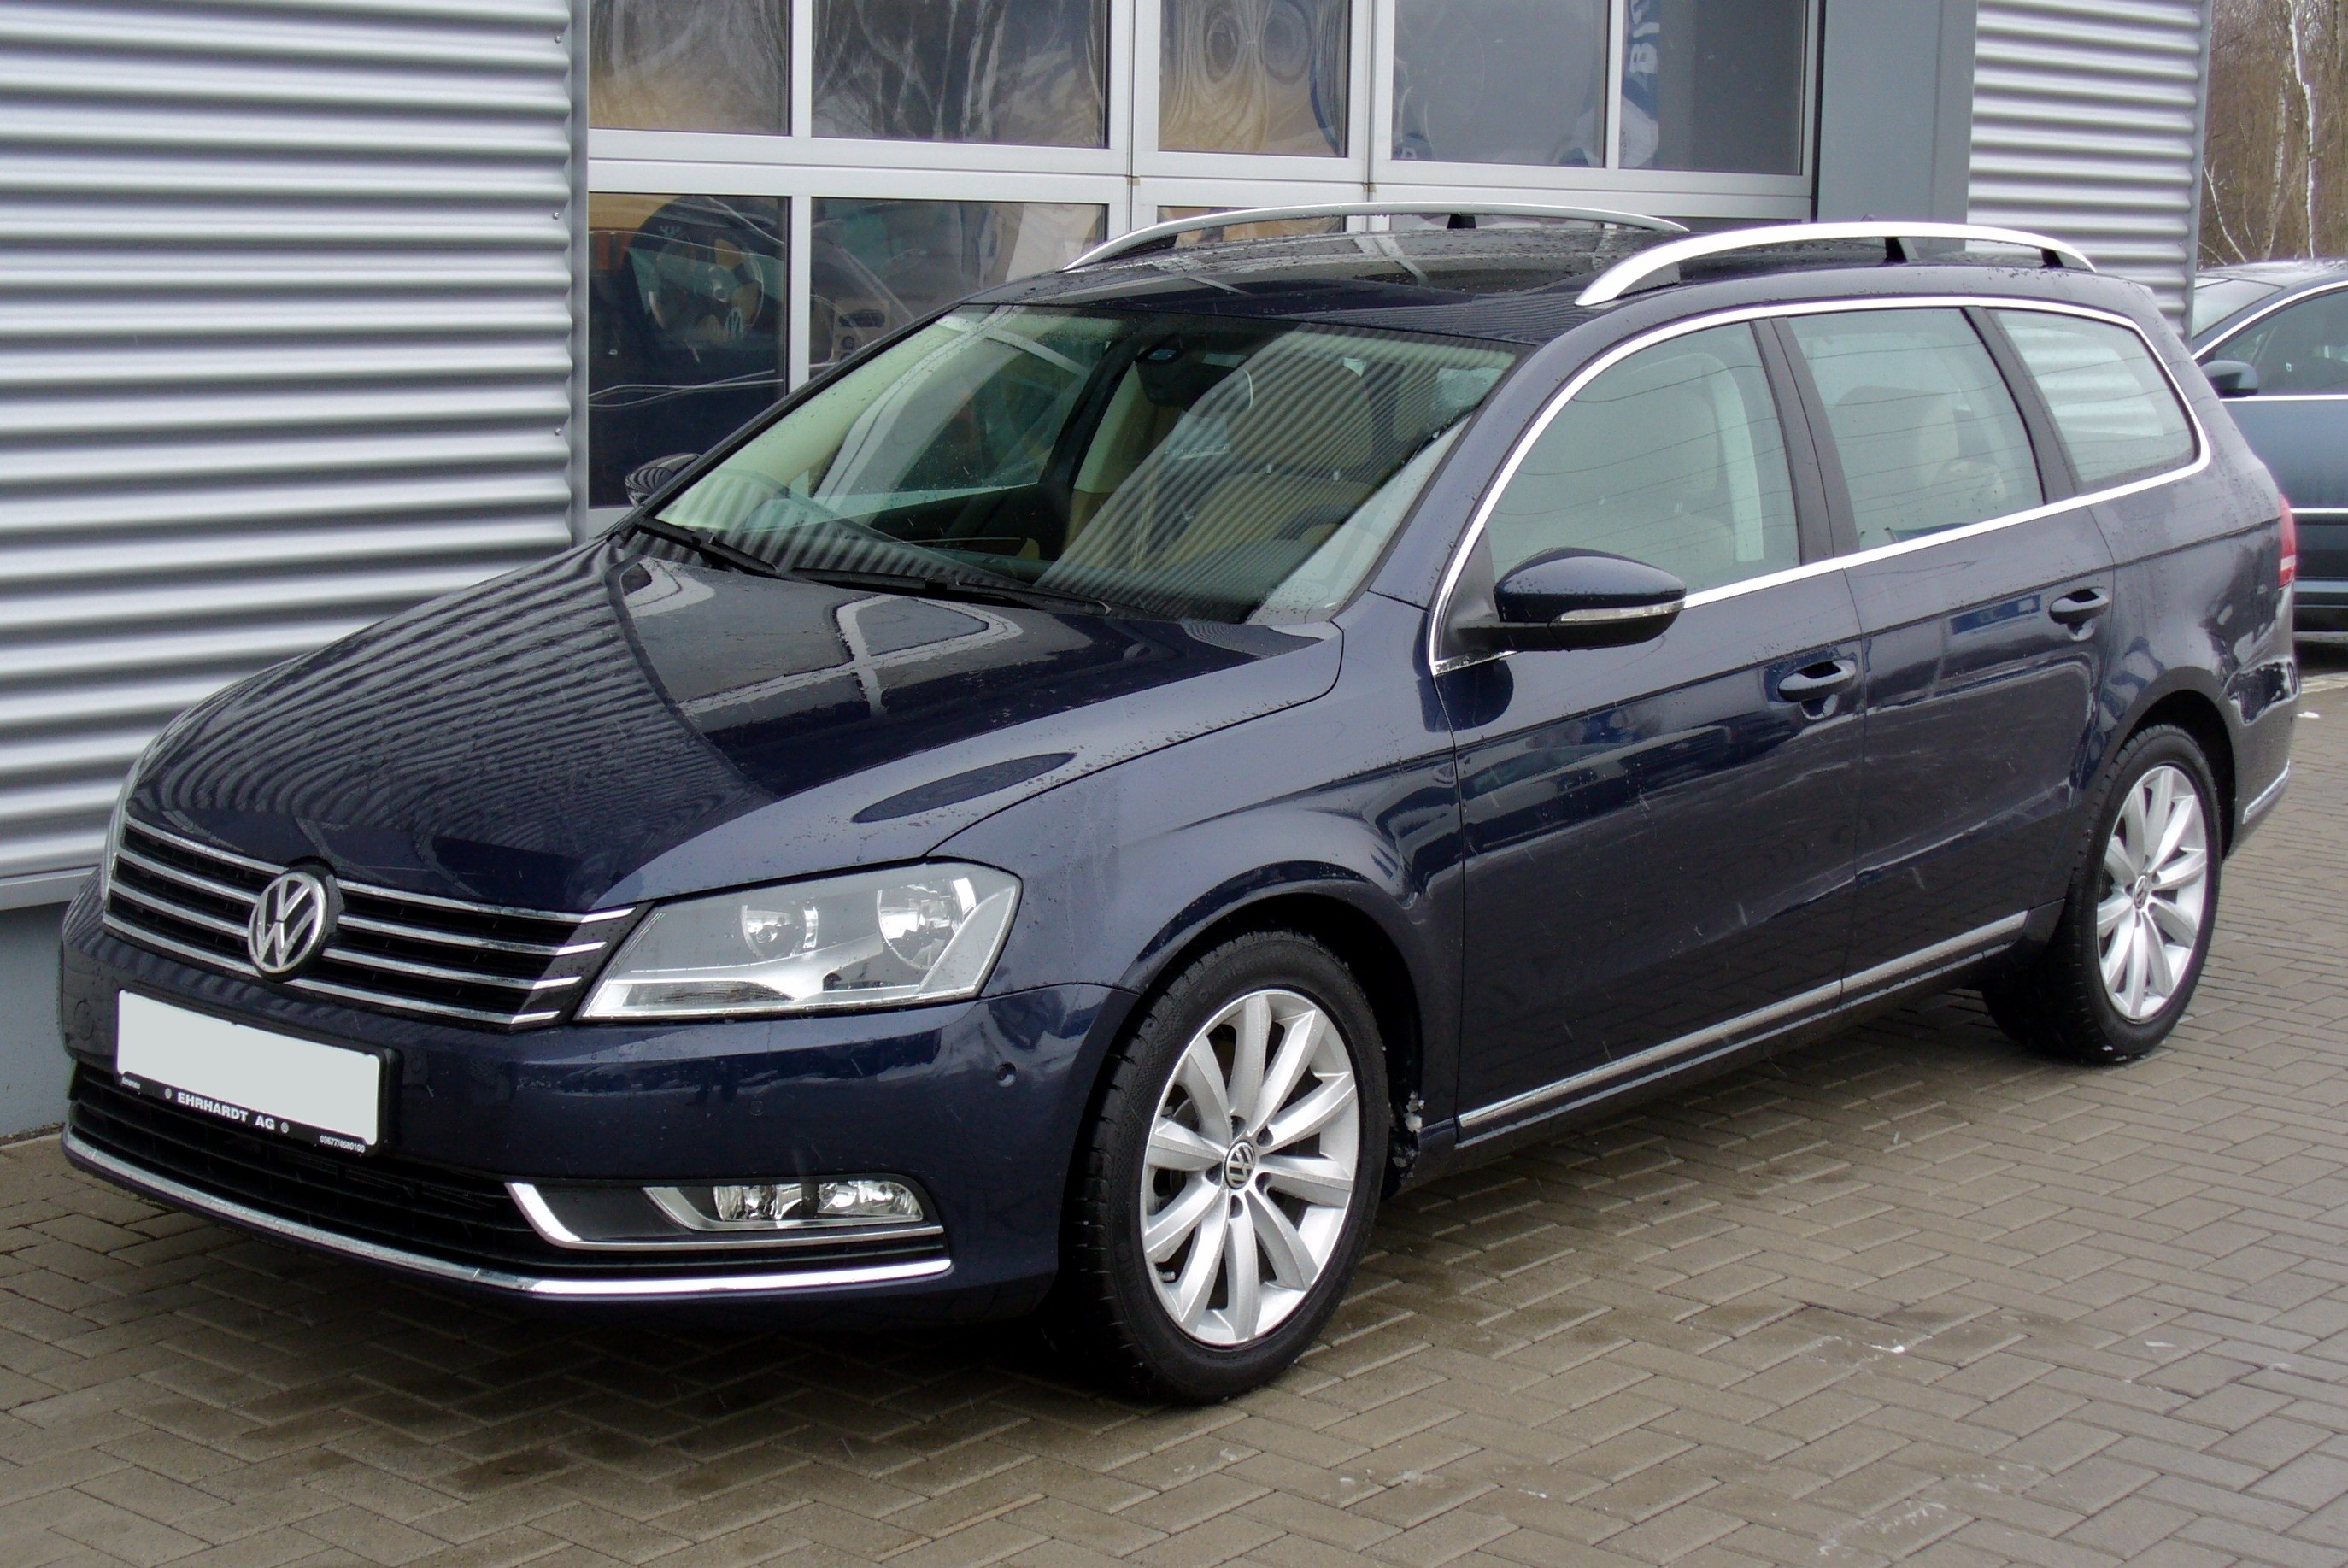 2012 volkswagen passat variant b7 pictures. Black Bedroom Furniture Sets. Home Design Ideas